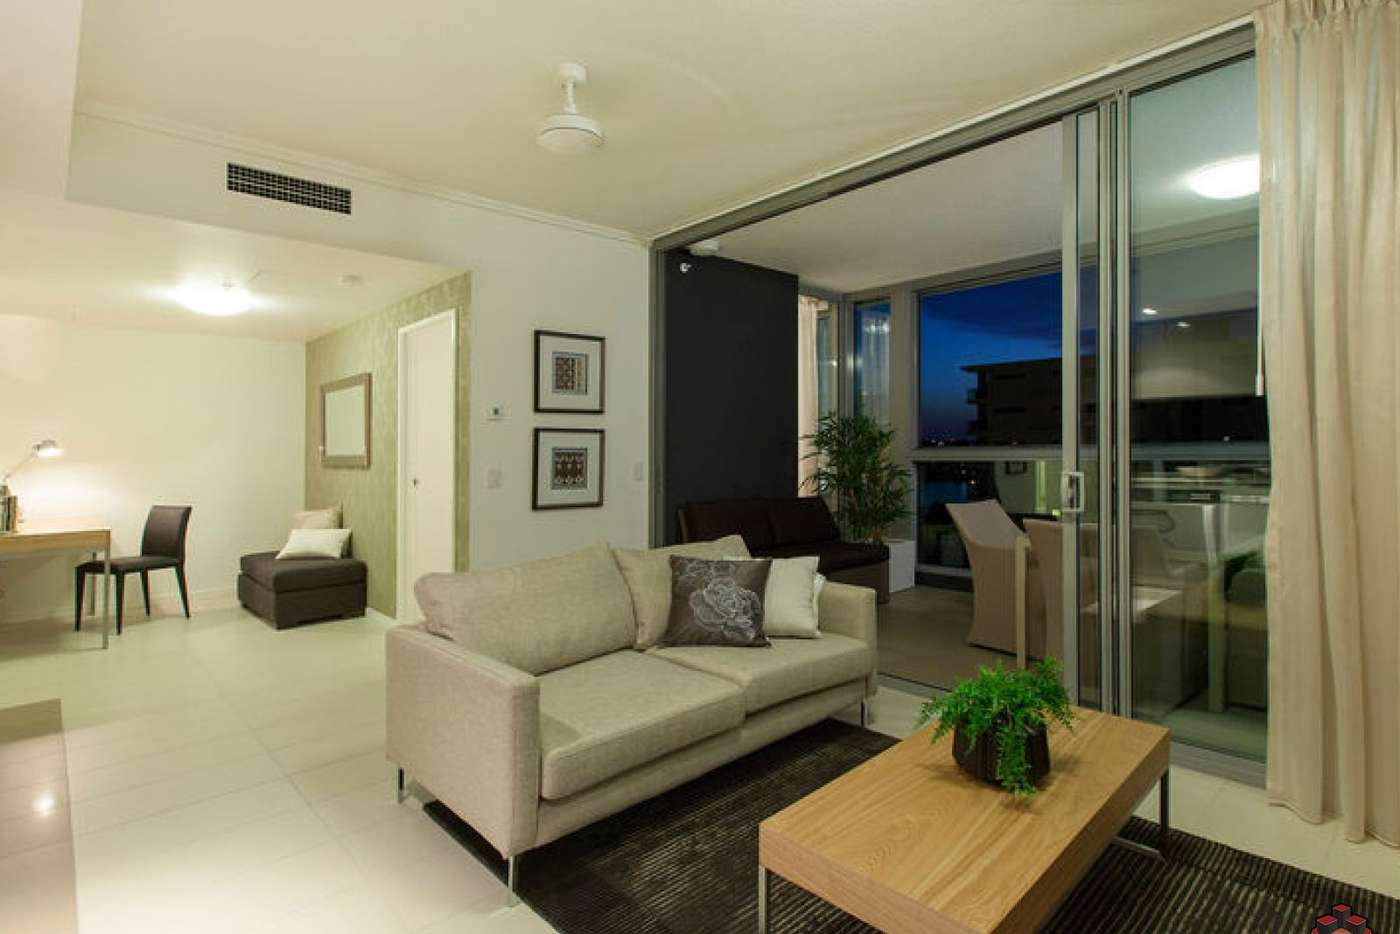 Sixth view of Homely apartment listing, ID:3916102/ 2 Harbour Road, Hamilton QLD 4007